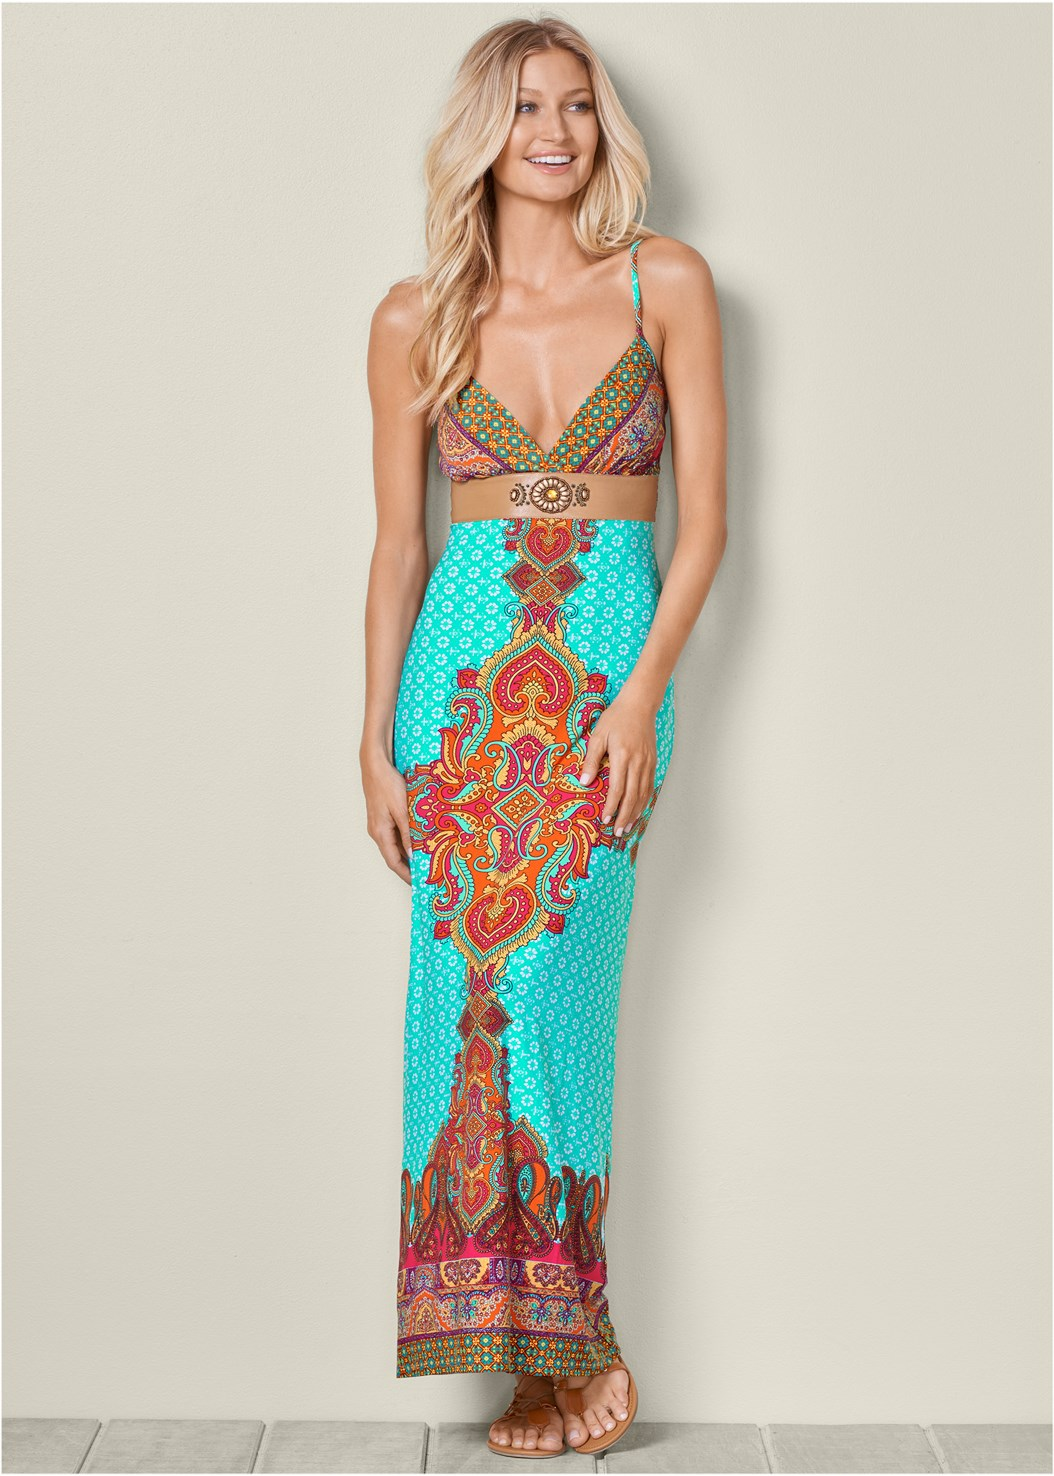 Printed Maxi Dress,Cupid Backless Lace Up Bra